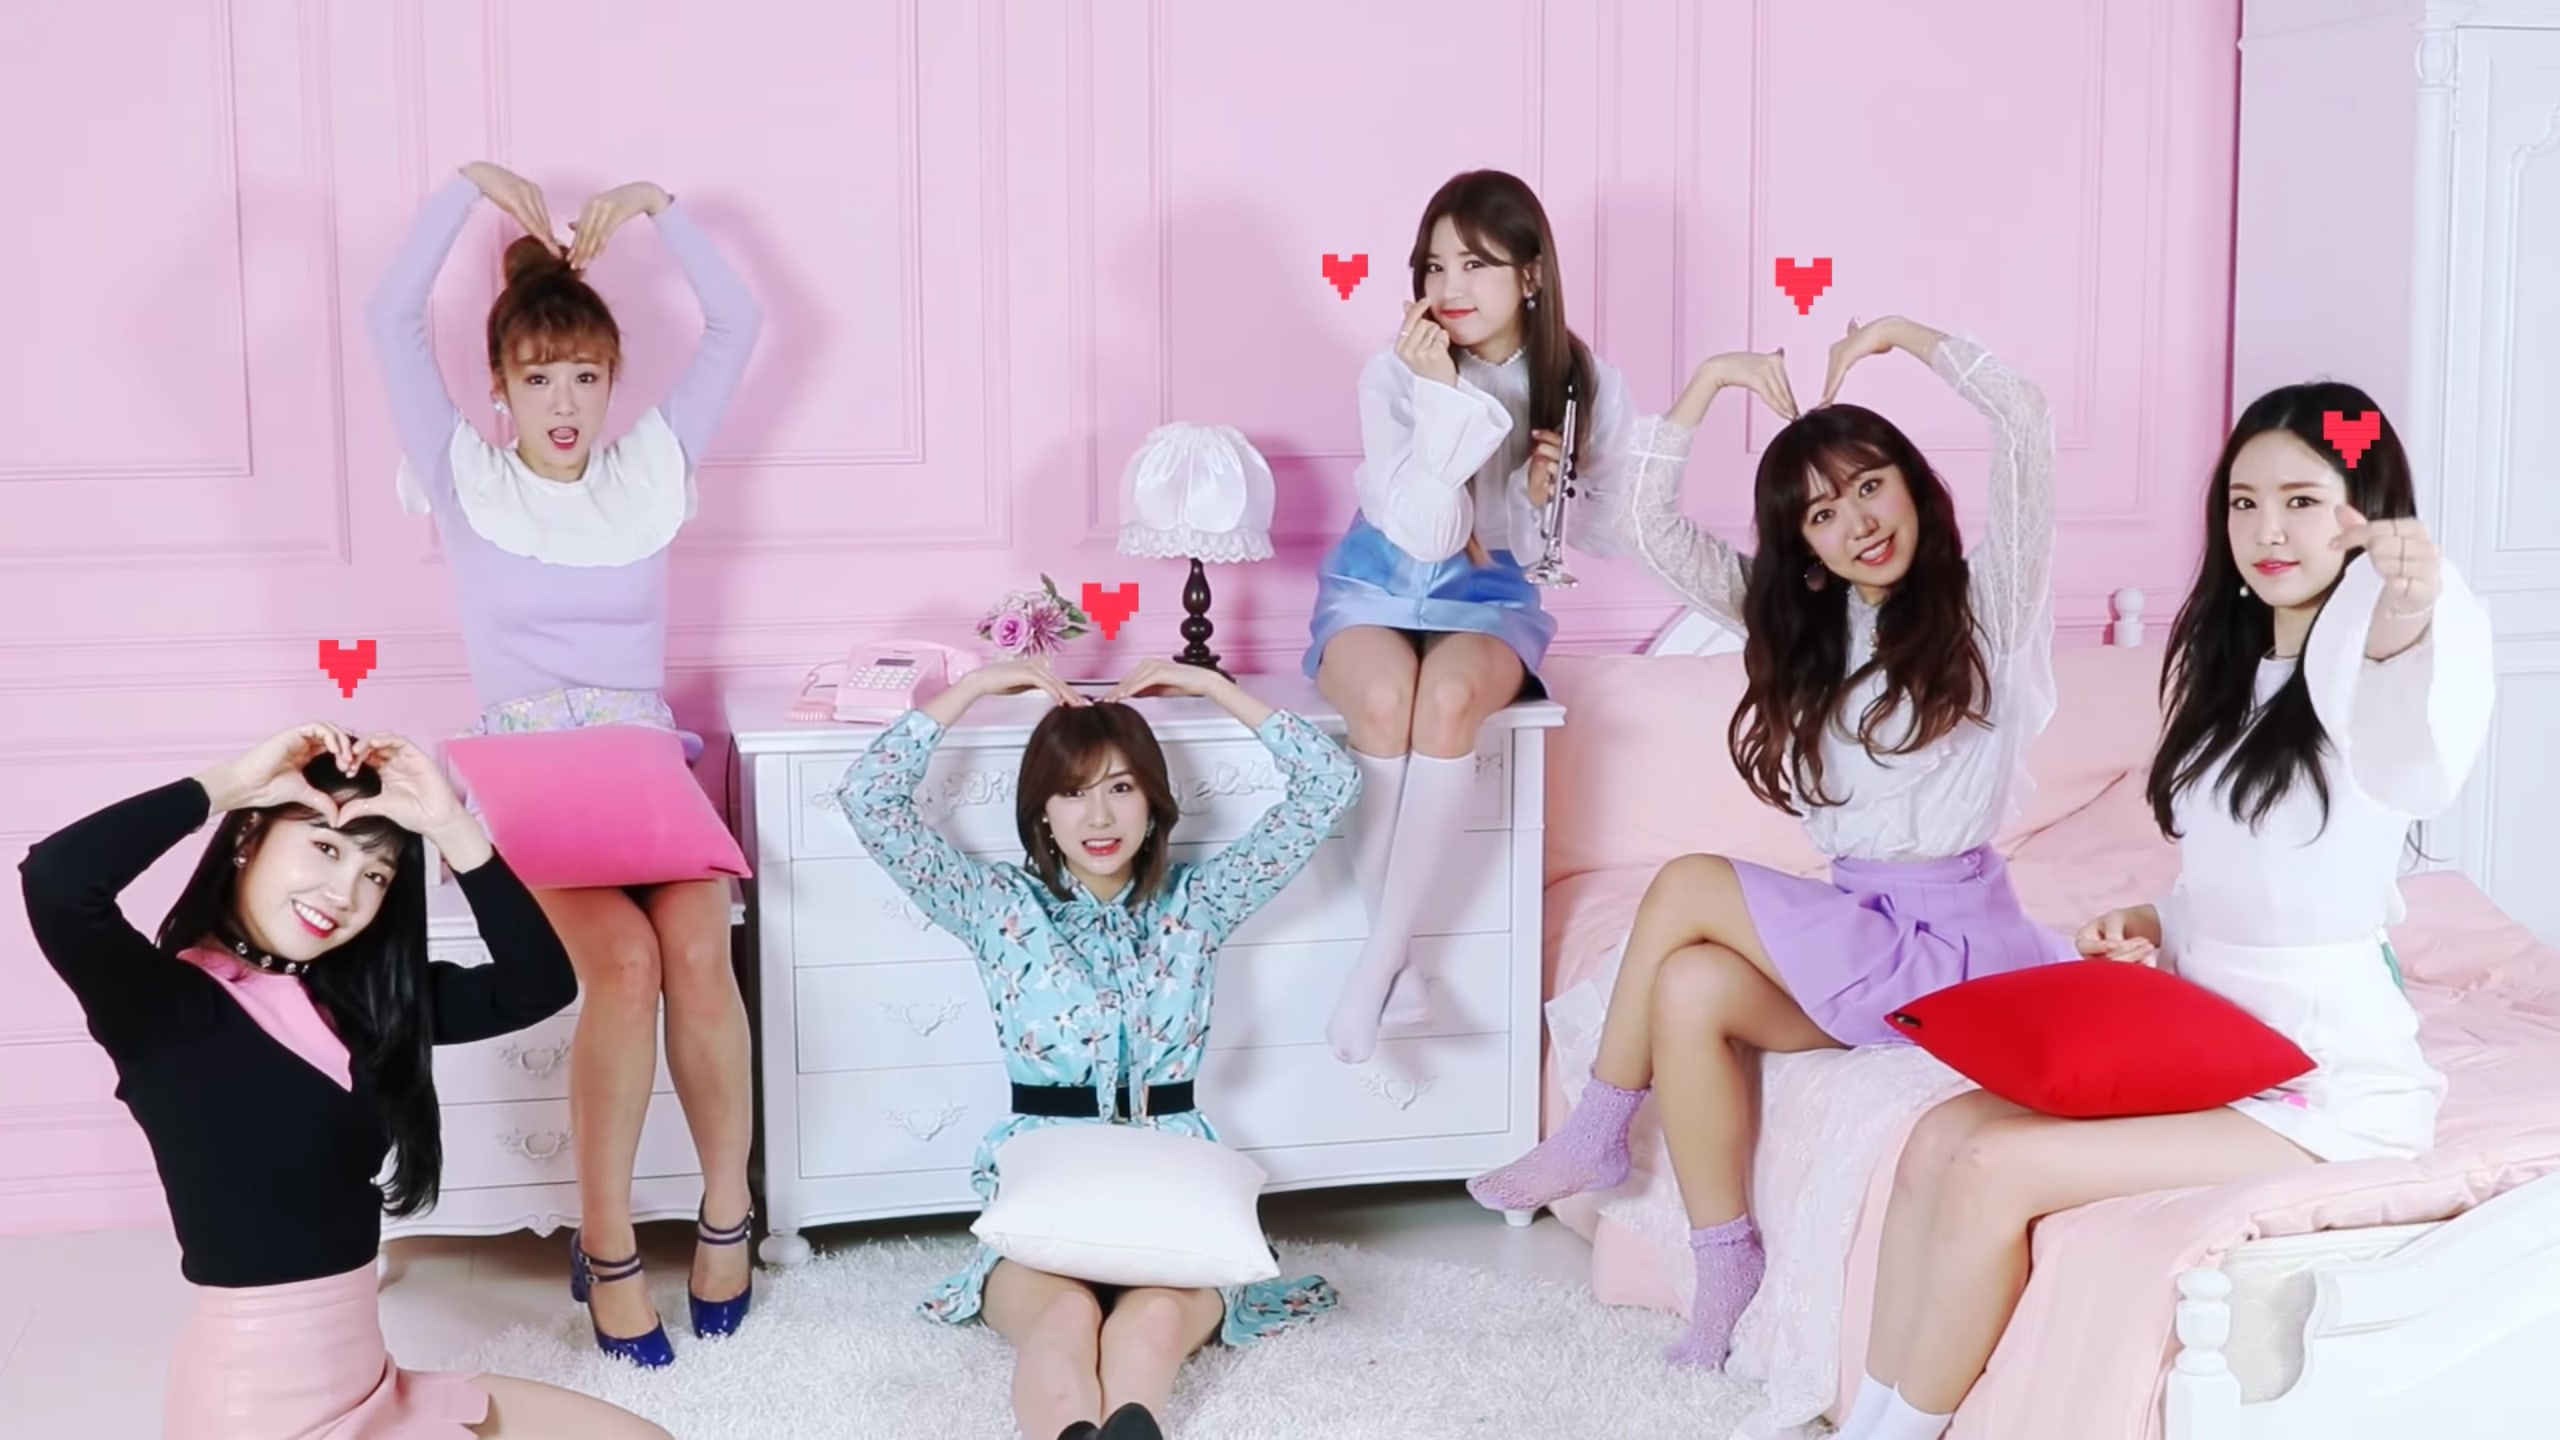 Watch: Apink Says They Will Always Be With Their Fans In MV Commemorating 6th Anniversary